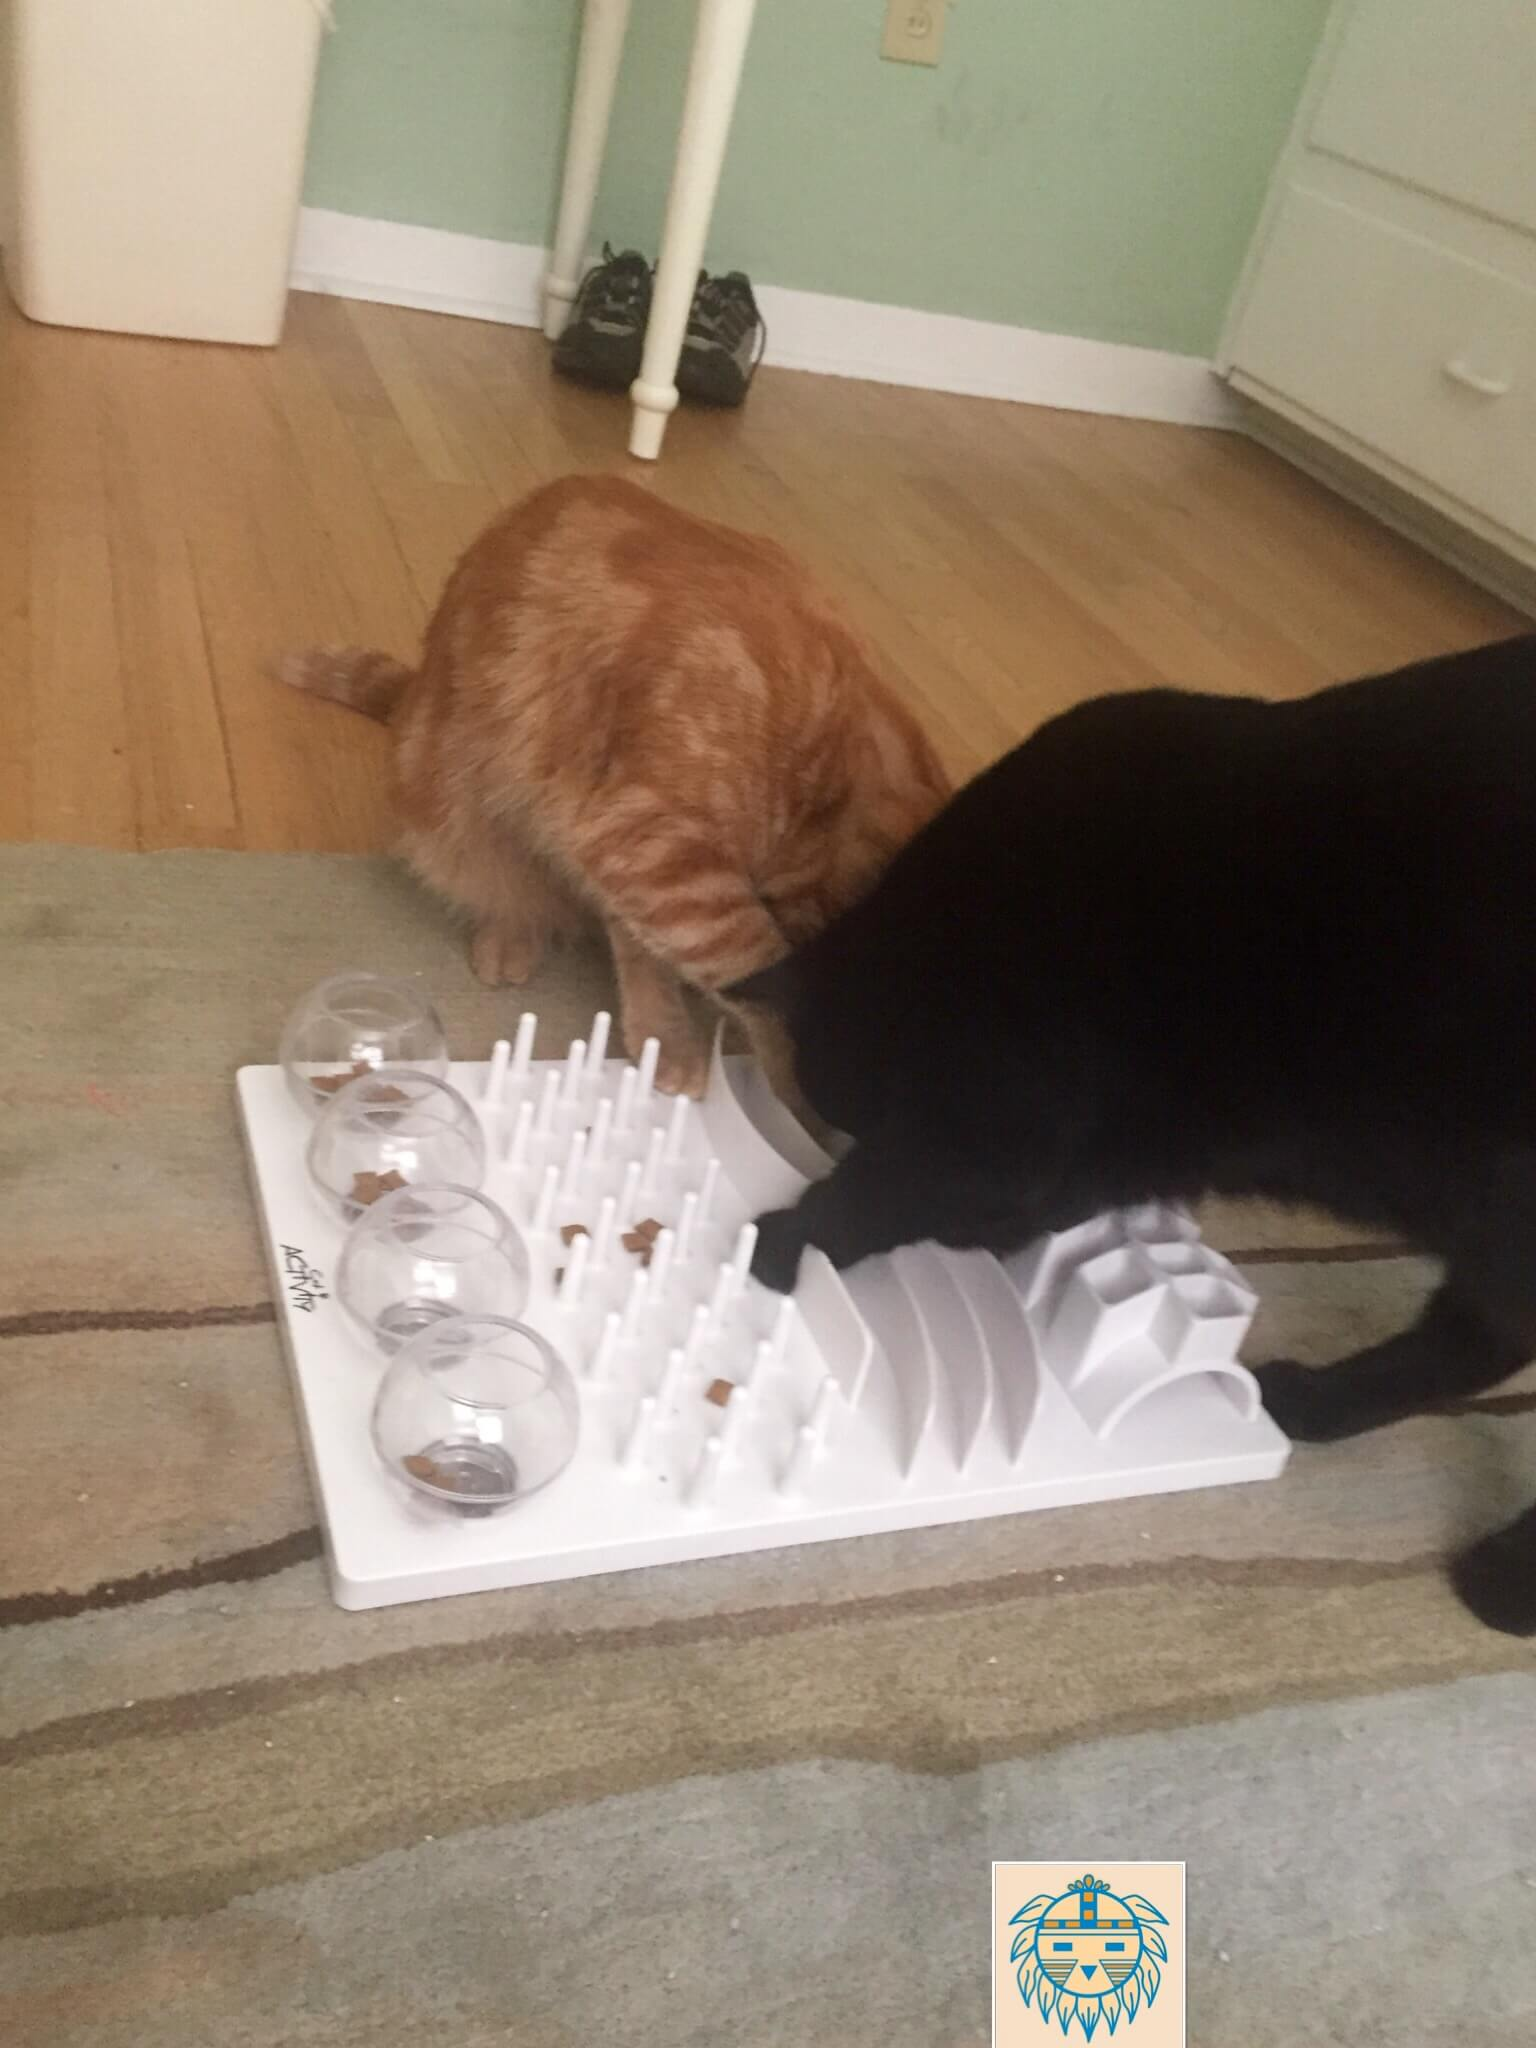 Make feeding time last longer by adding a food station to your cats meal time.  Mischief on the left is using the Catit senses 2.0 digger for cats, while Finn on the right is demonstrating how to use the Northmate Catch Interactive feeder for cats.  Both are available from Amazon or other retailers